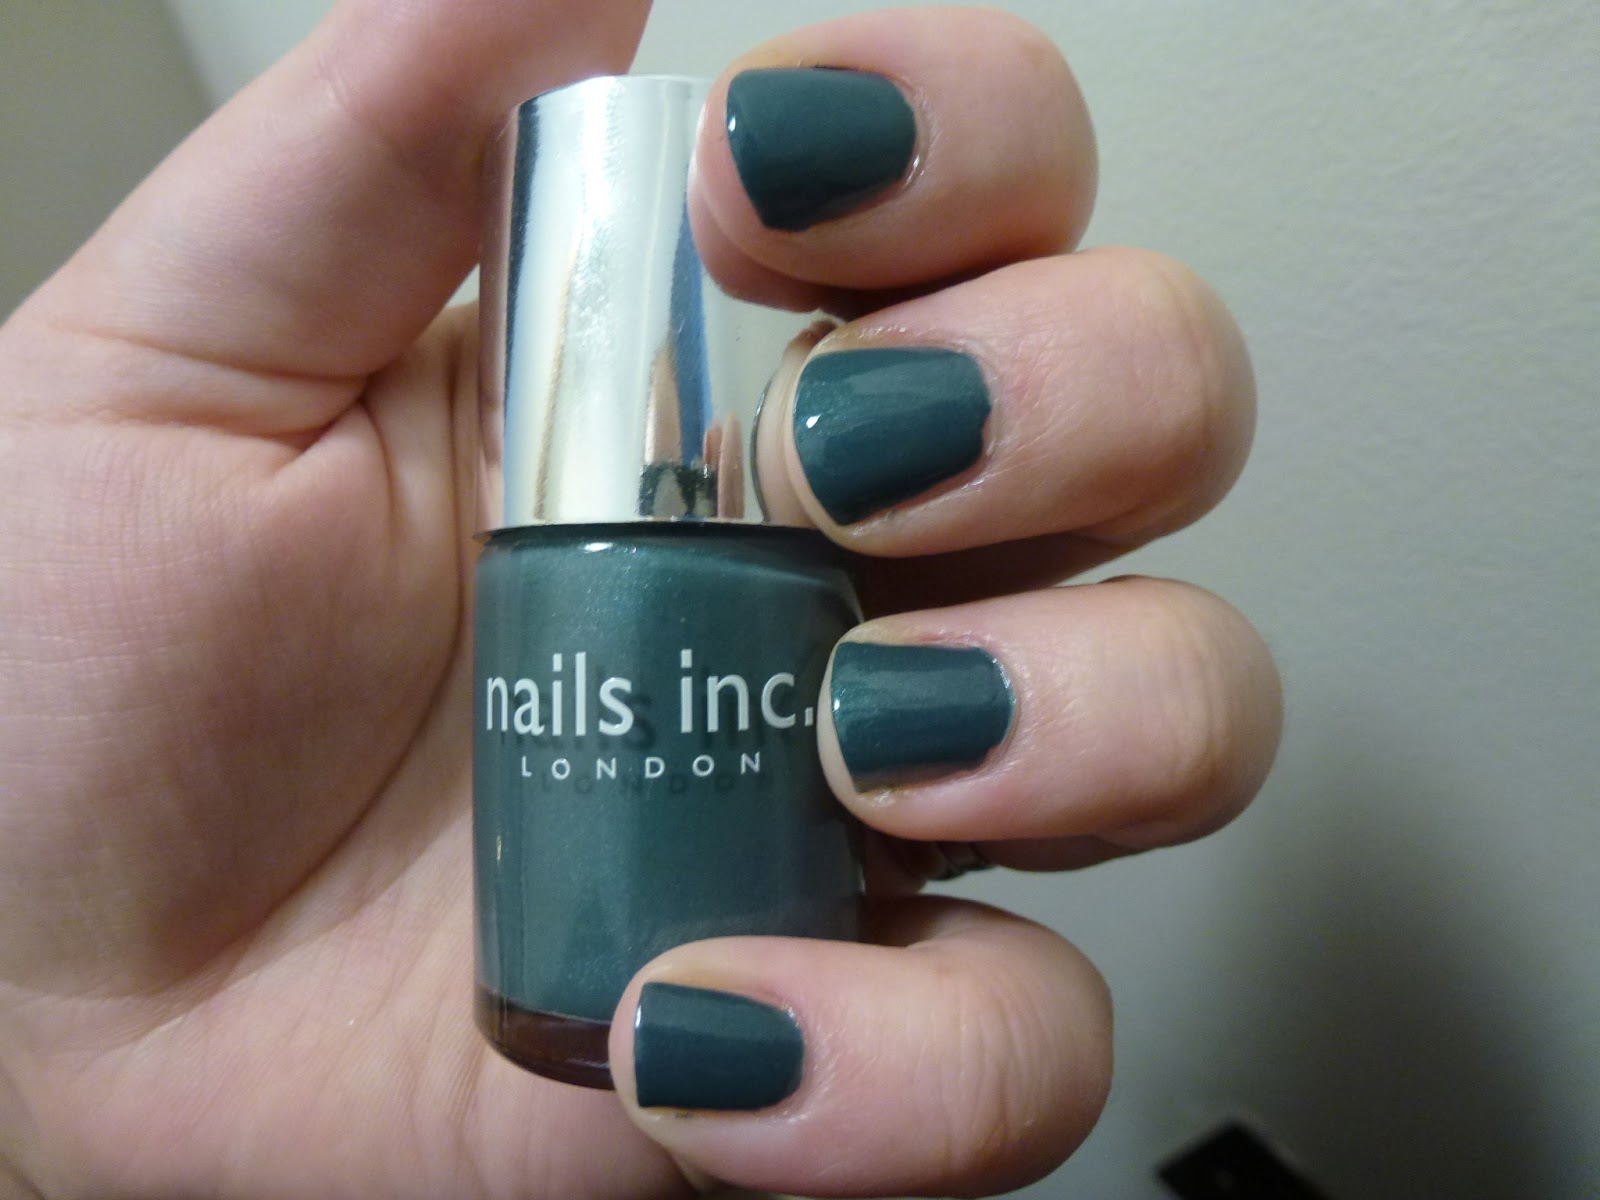 Nails Inc Polishes From